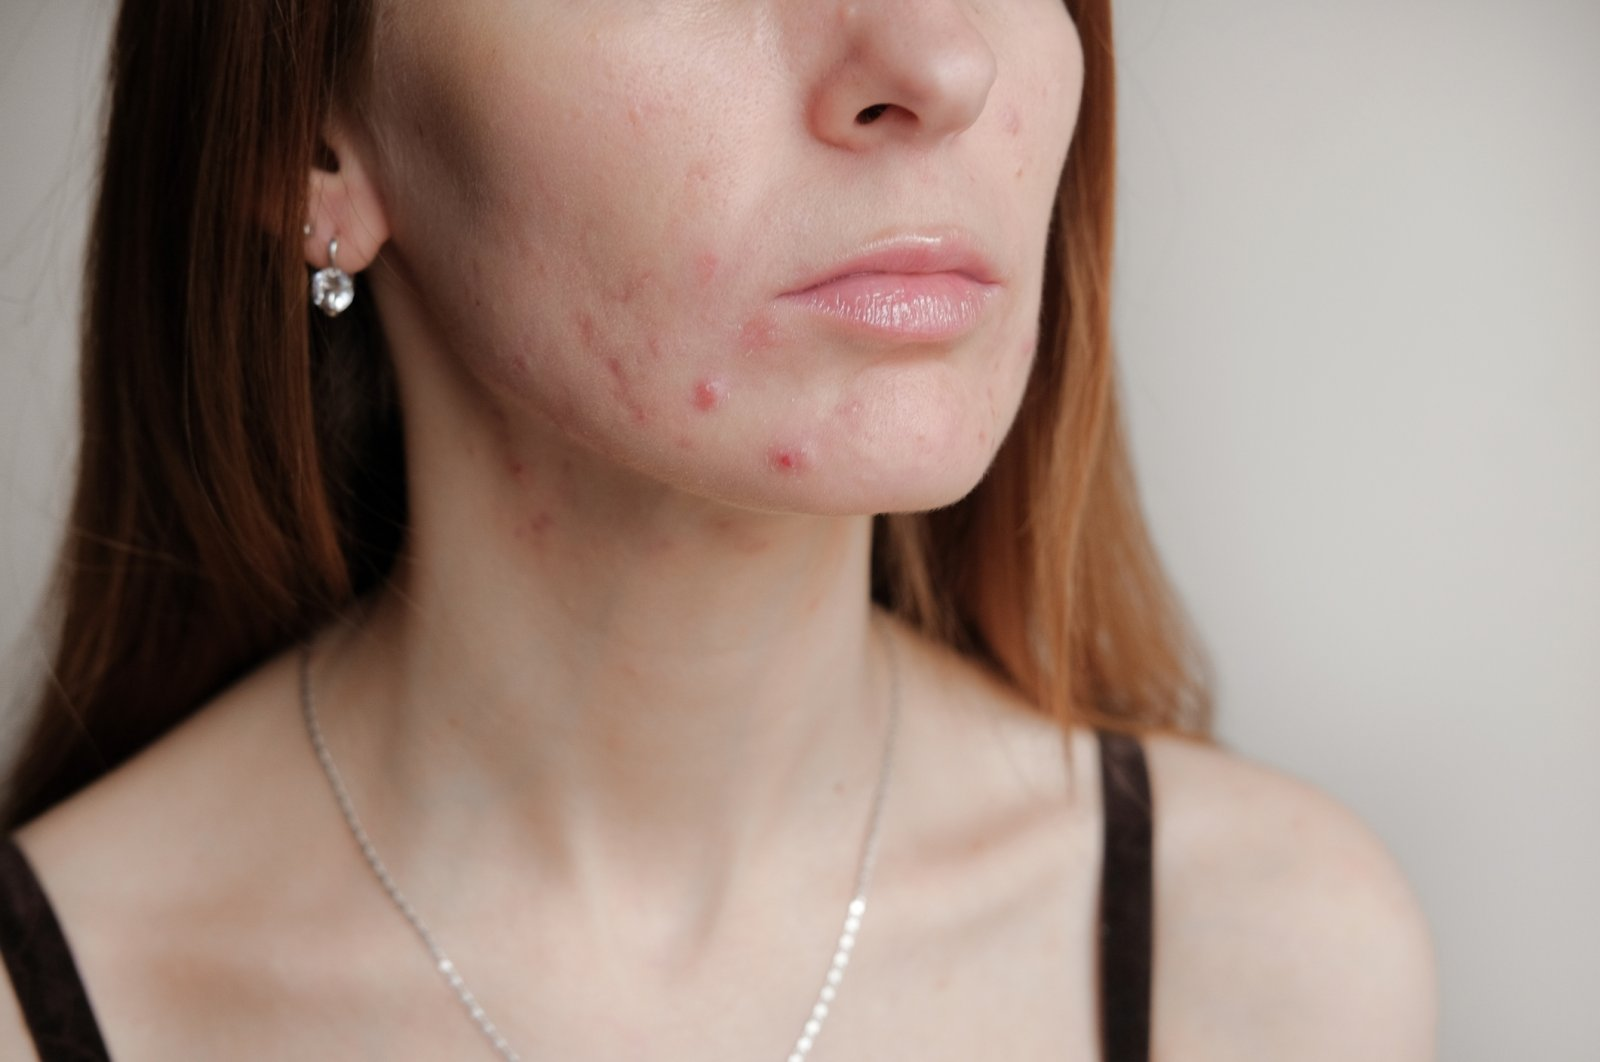 Stress can cause spikes in oil production, leading to acne lesions forming on the skin. (iStock Photo)